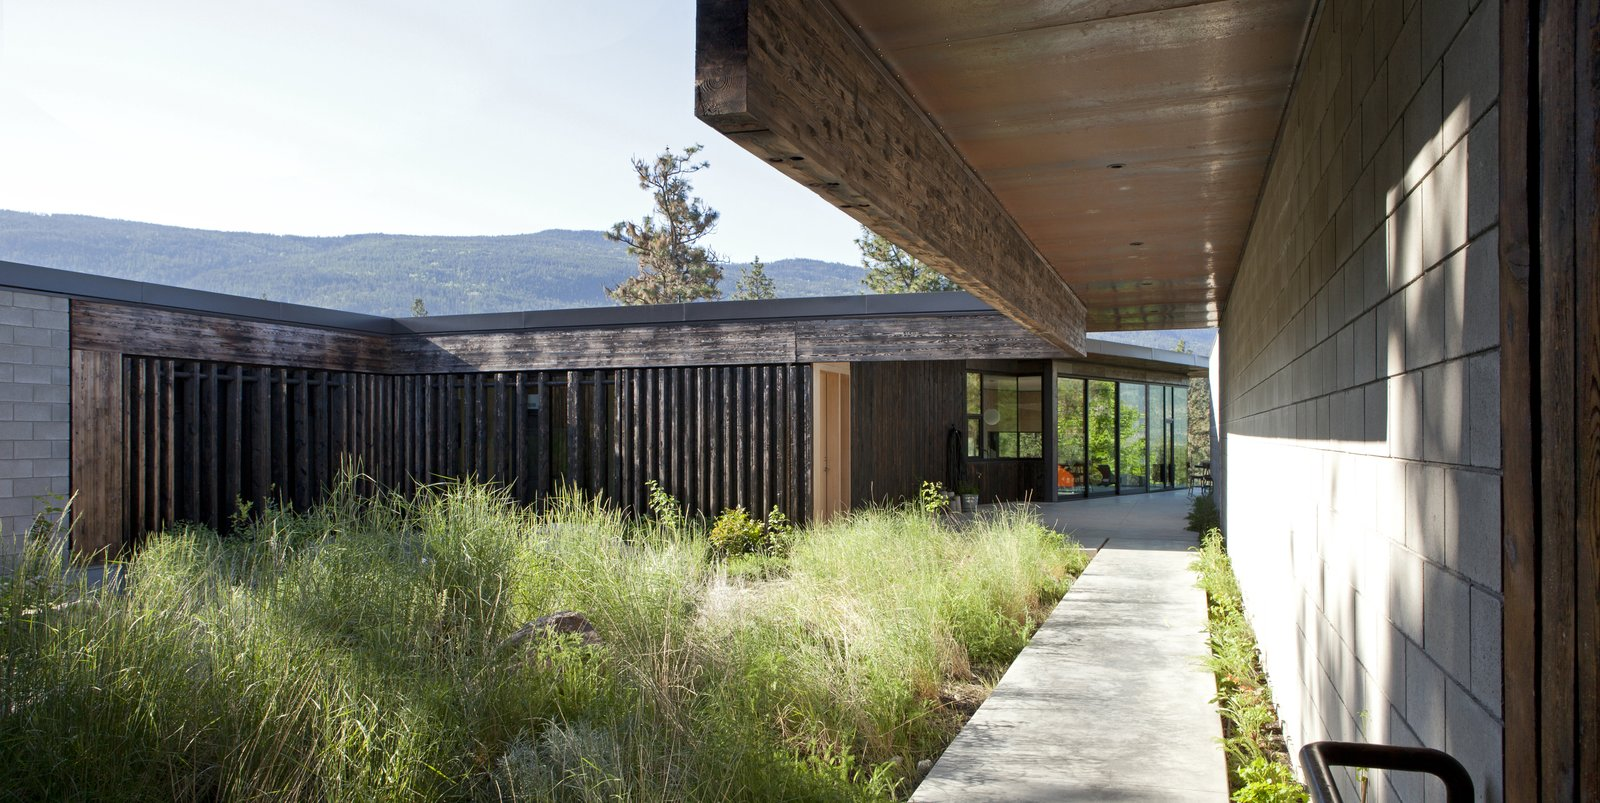 A Hilltop Home in British Columbia That Seems to Grow Out of a Park